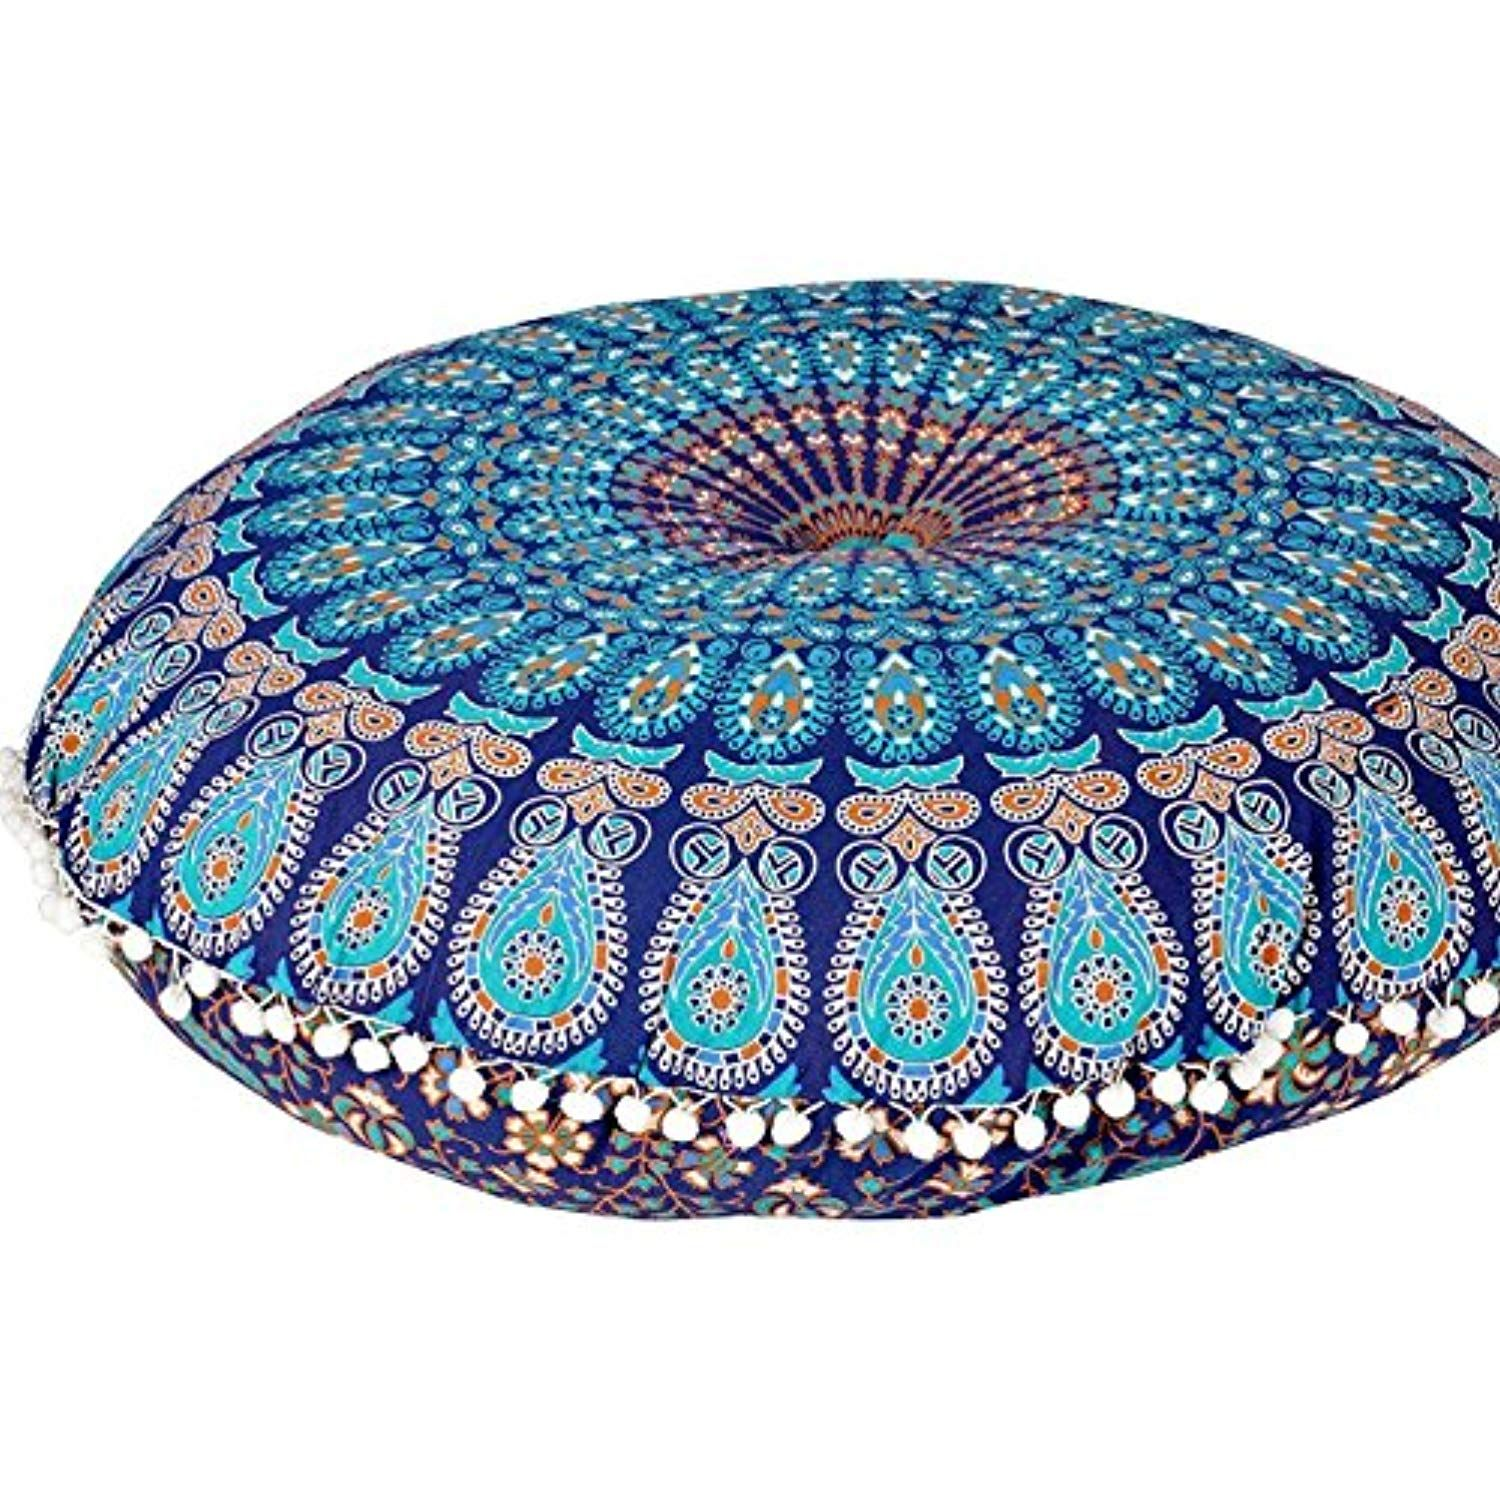 Plush Decor Large Floor Cushion Cover Kids Meditation Mandala